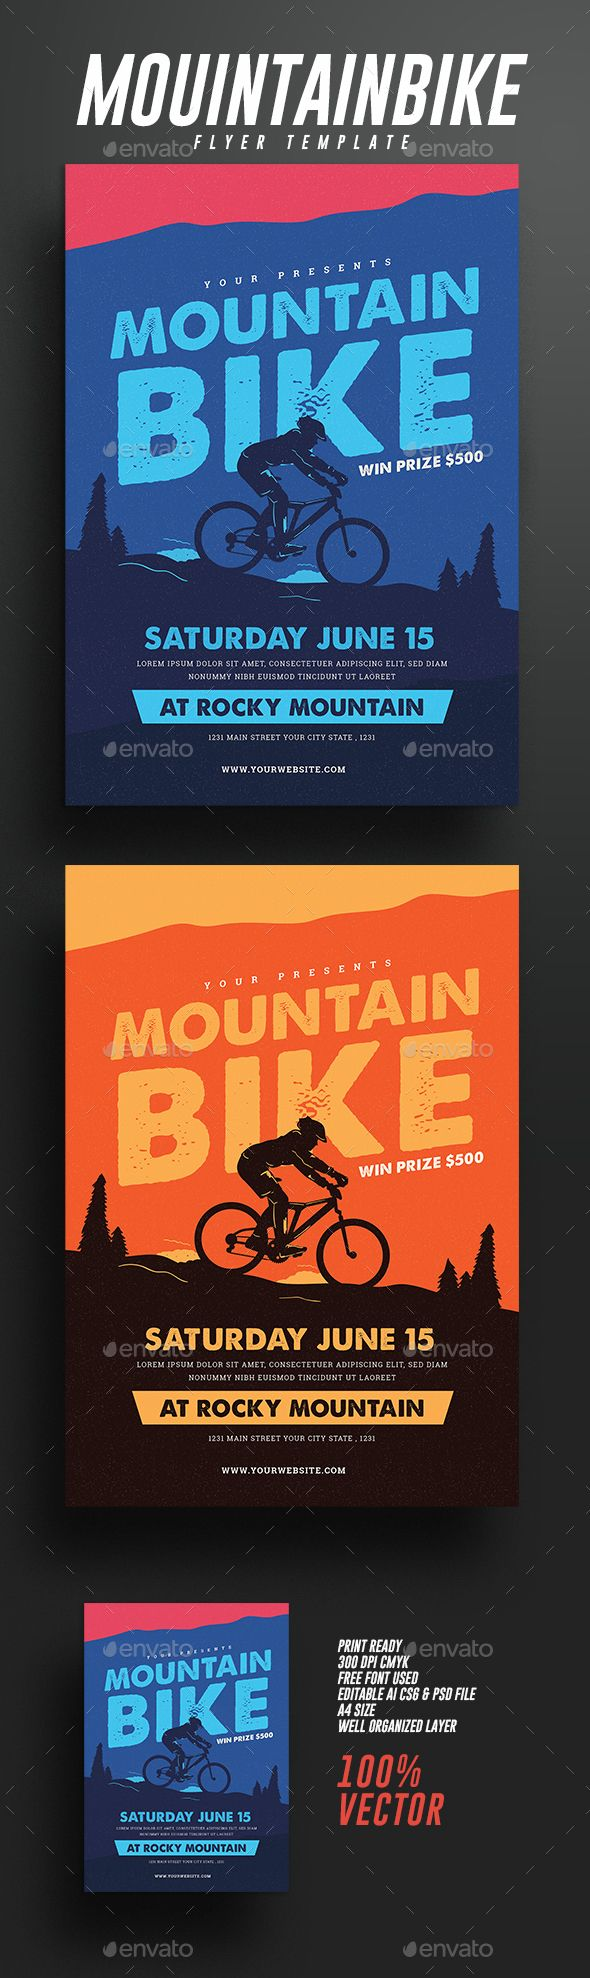 Mountain Bike Event Flyer by guper SpesificationAIcs6& Psd FIle 100 Vector Scaleable Full editable free font used CMYK 300 DPI A4 size (8.27x11.69) Print ready Font